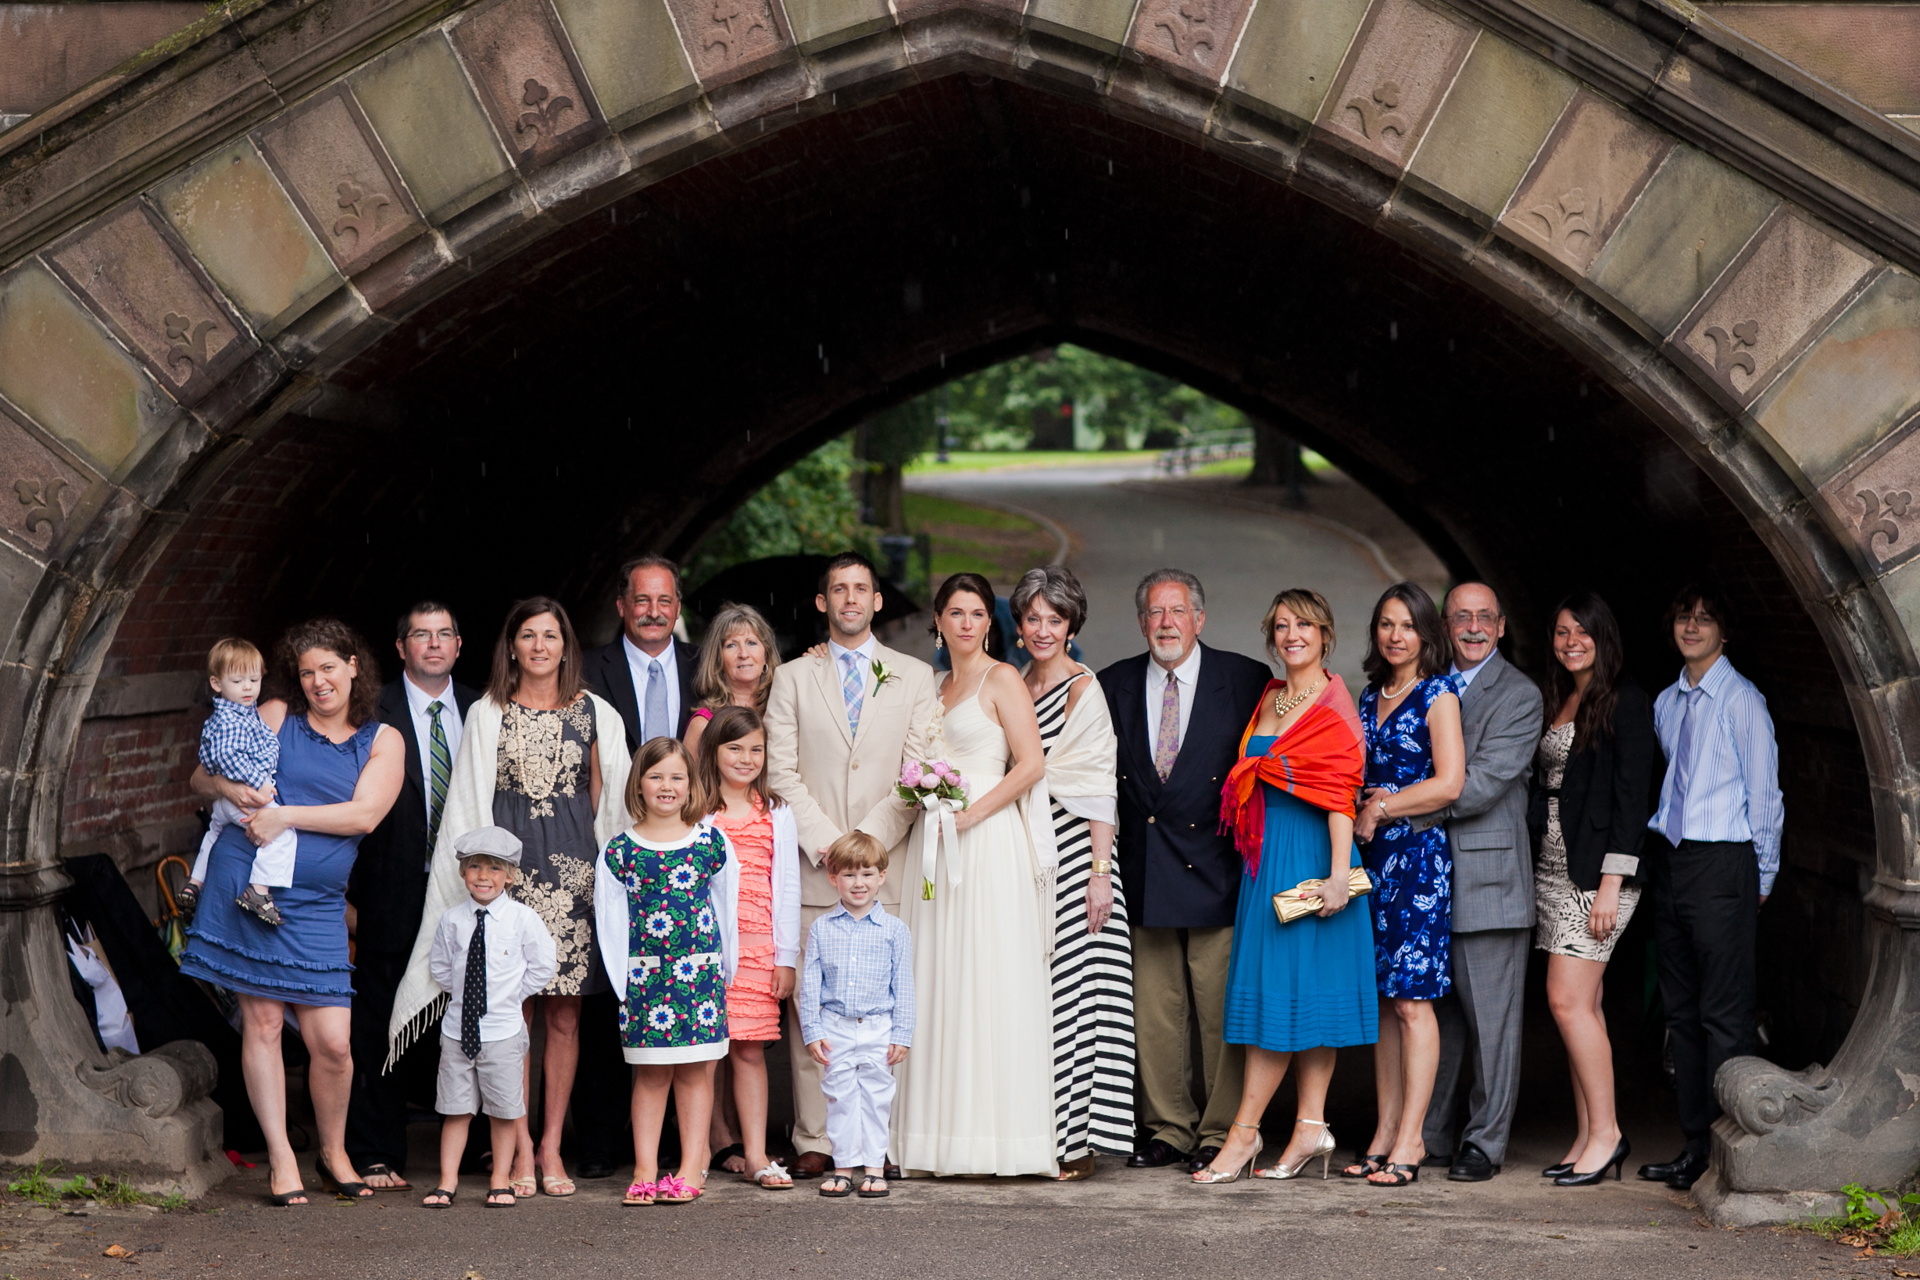 The bride and groom's families in Central Park, NYC